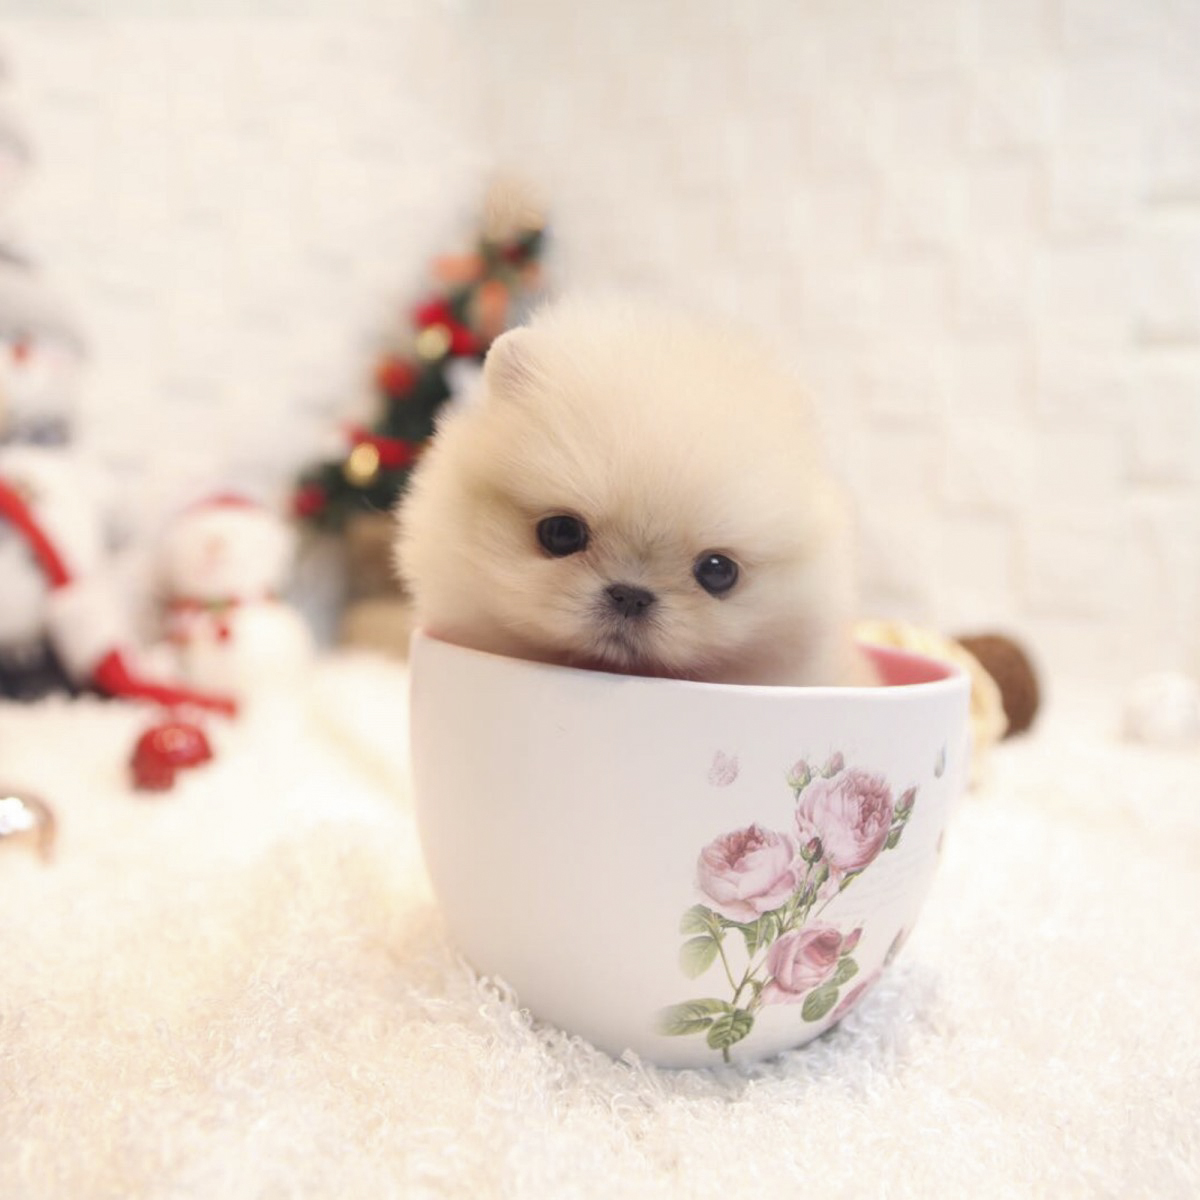 Pictures Of Teacup Dogs Dogs